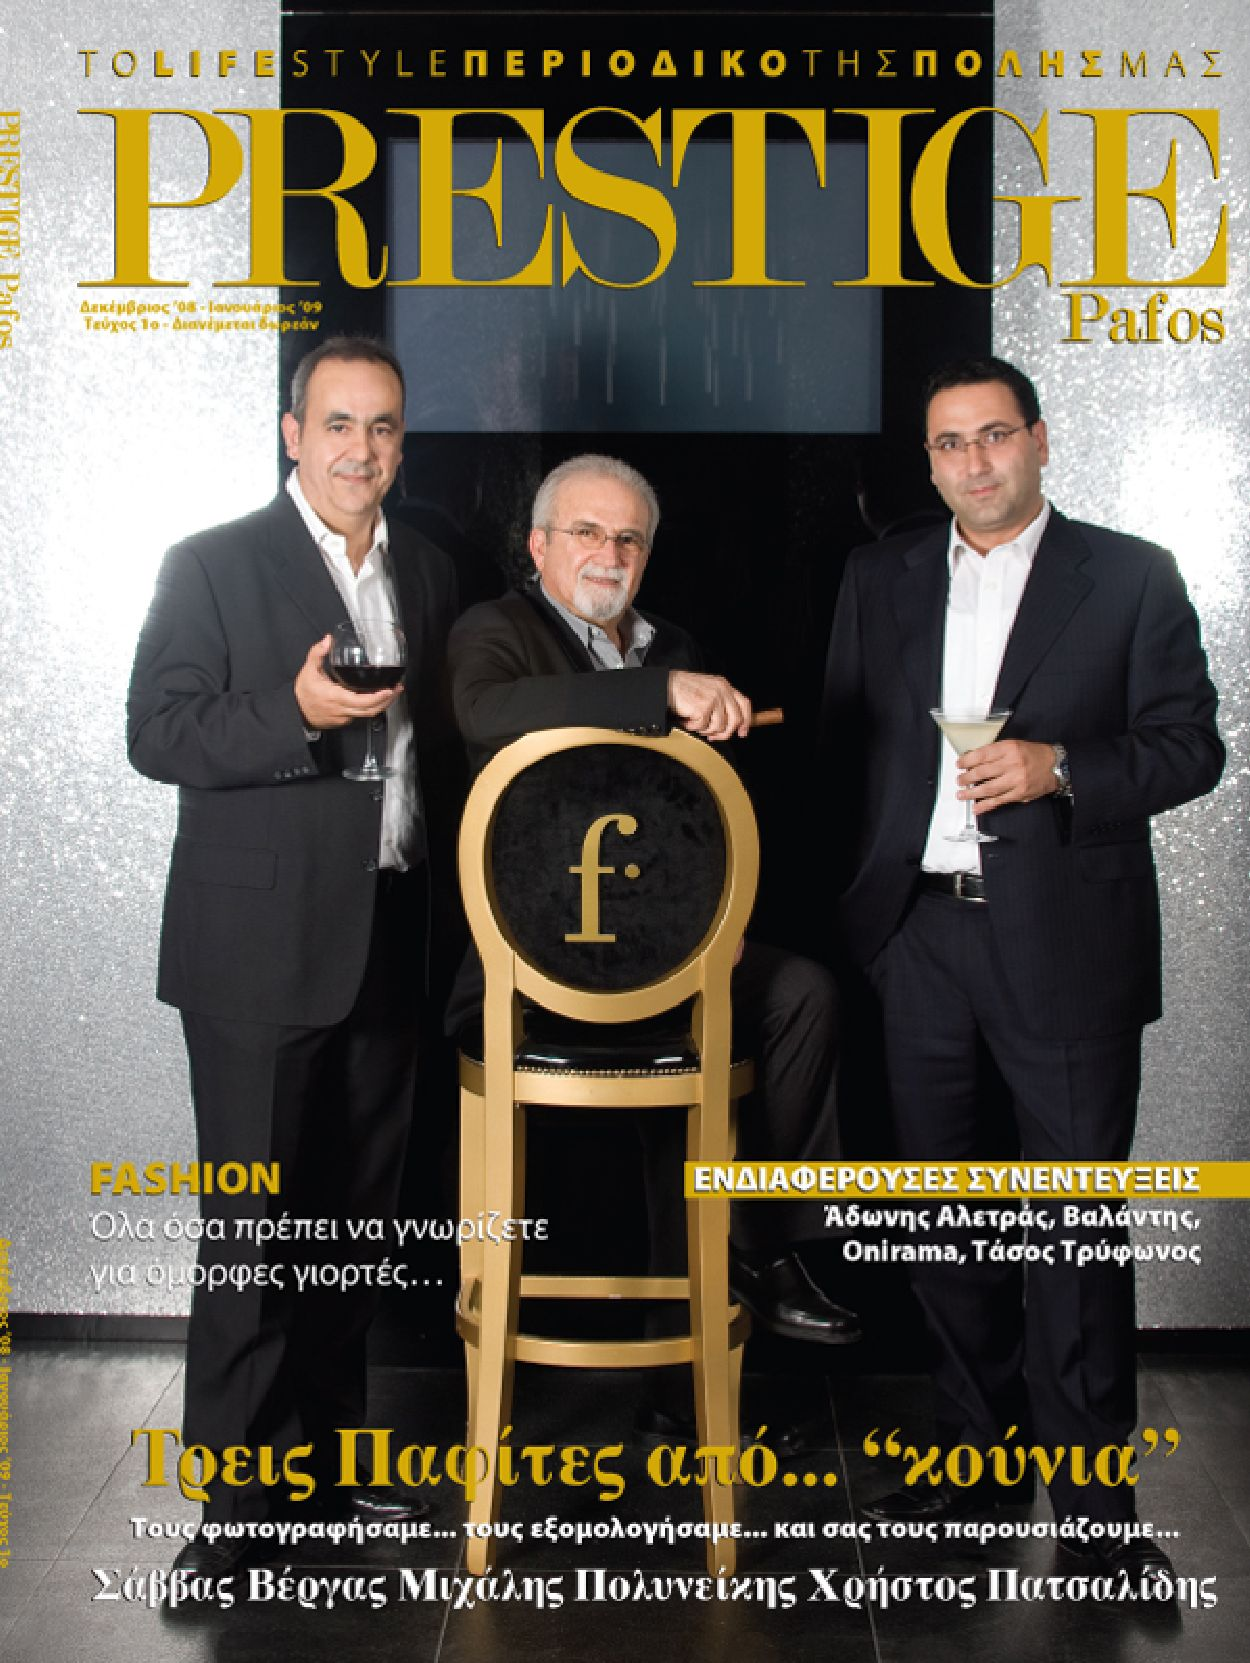 Prestige Magazine December 2008 - January 2009 by Enigma Global - issuu 8fd0ebf4ce6